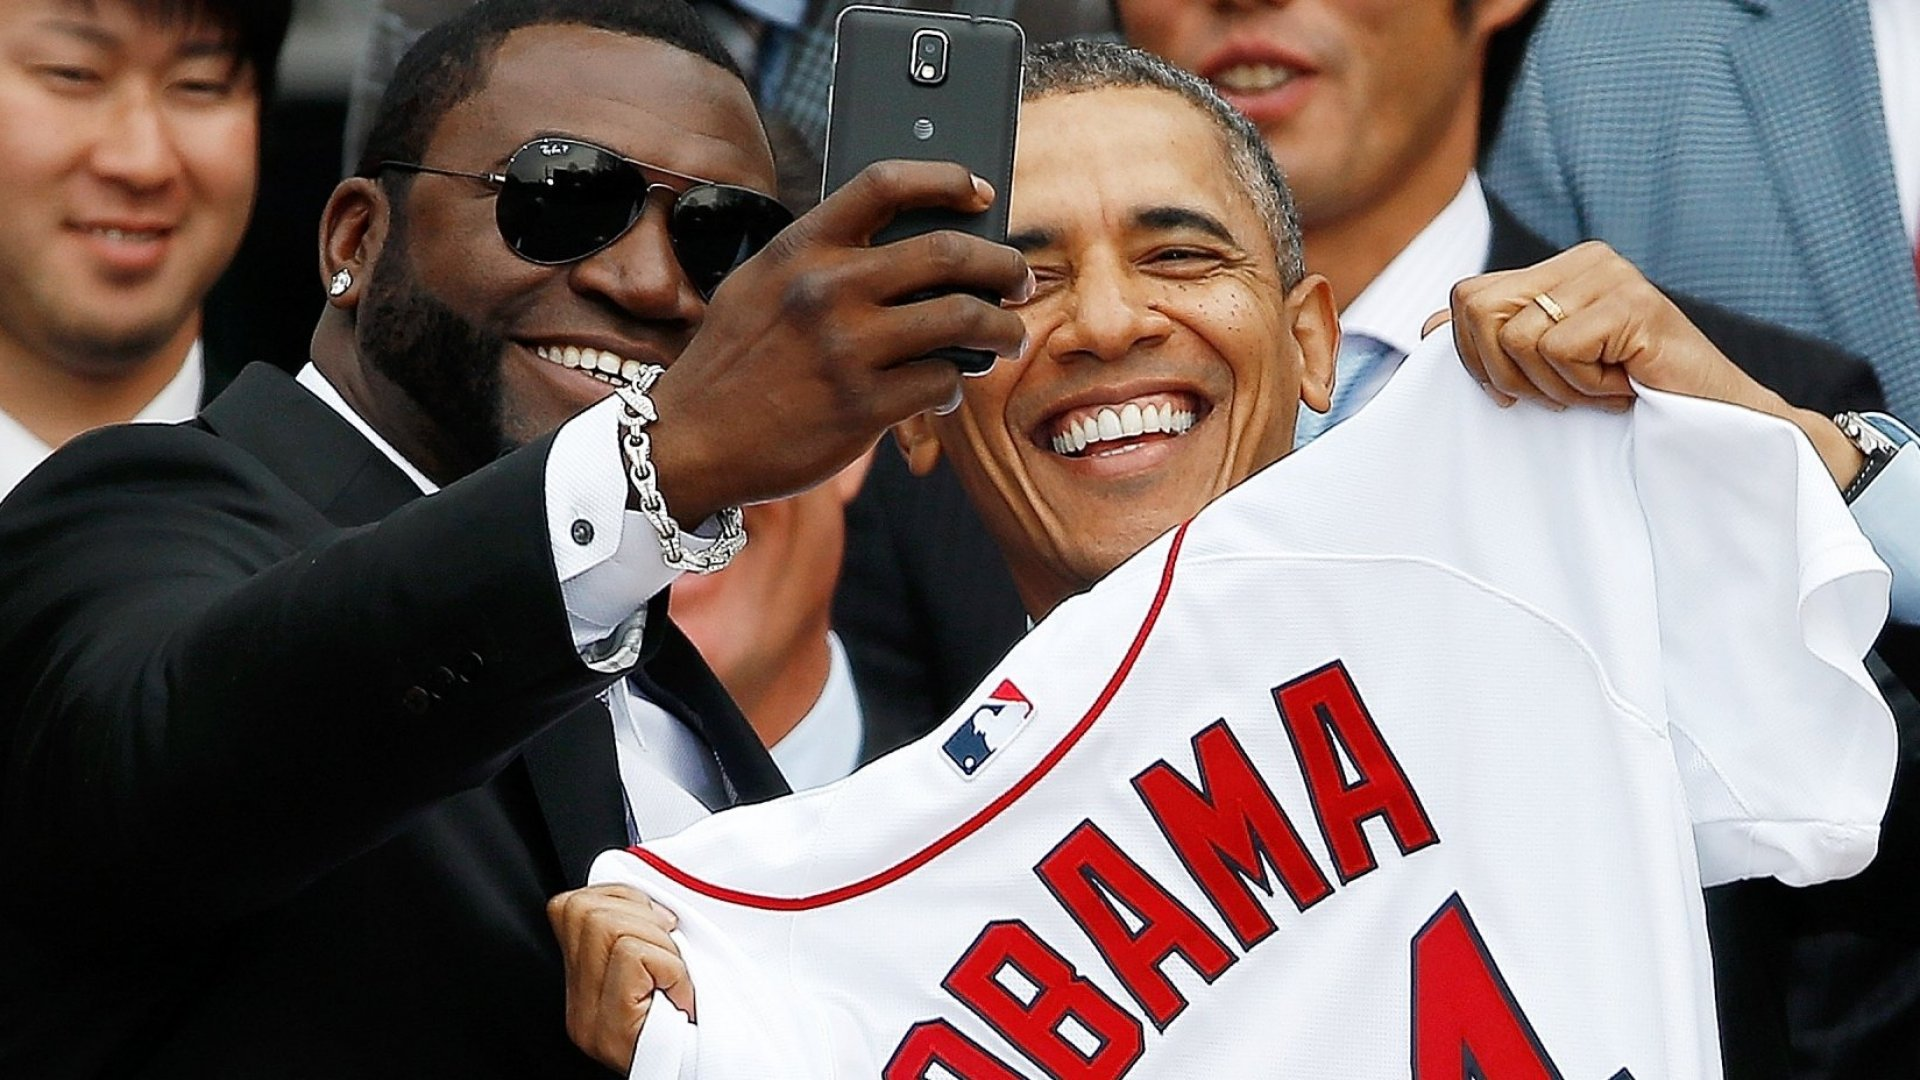 The Top 10 Social Media All-Stars of Major League Baseball